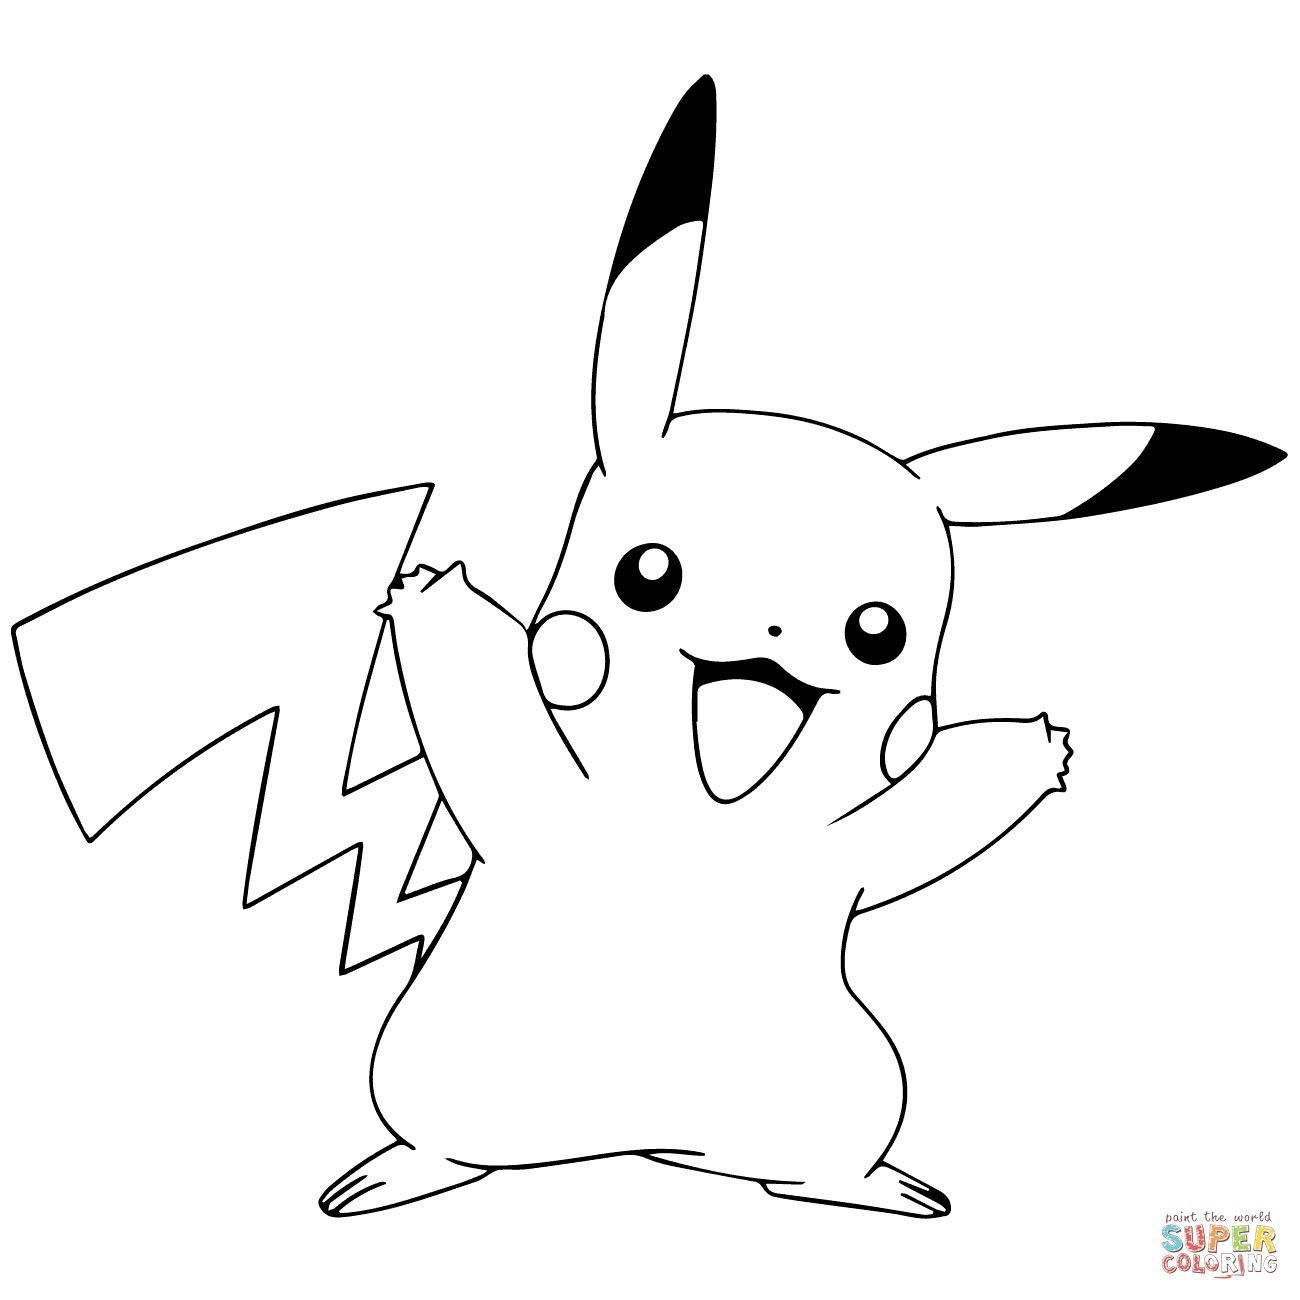 Pikachu Pokemon Go Coloring Pages From The Thousand Photos Online With Regards To Pikachu Pokem Pikachu Coloring Page Pokemon Coloring Pokemon Coloring Pages